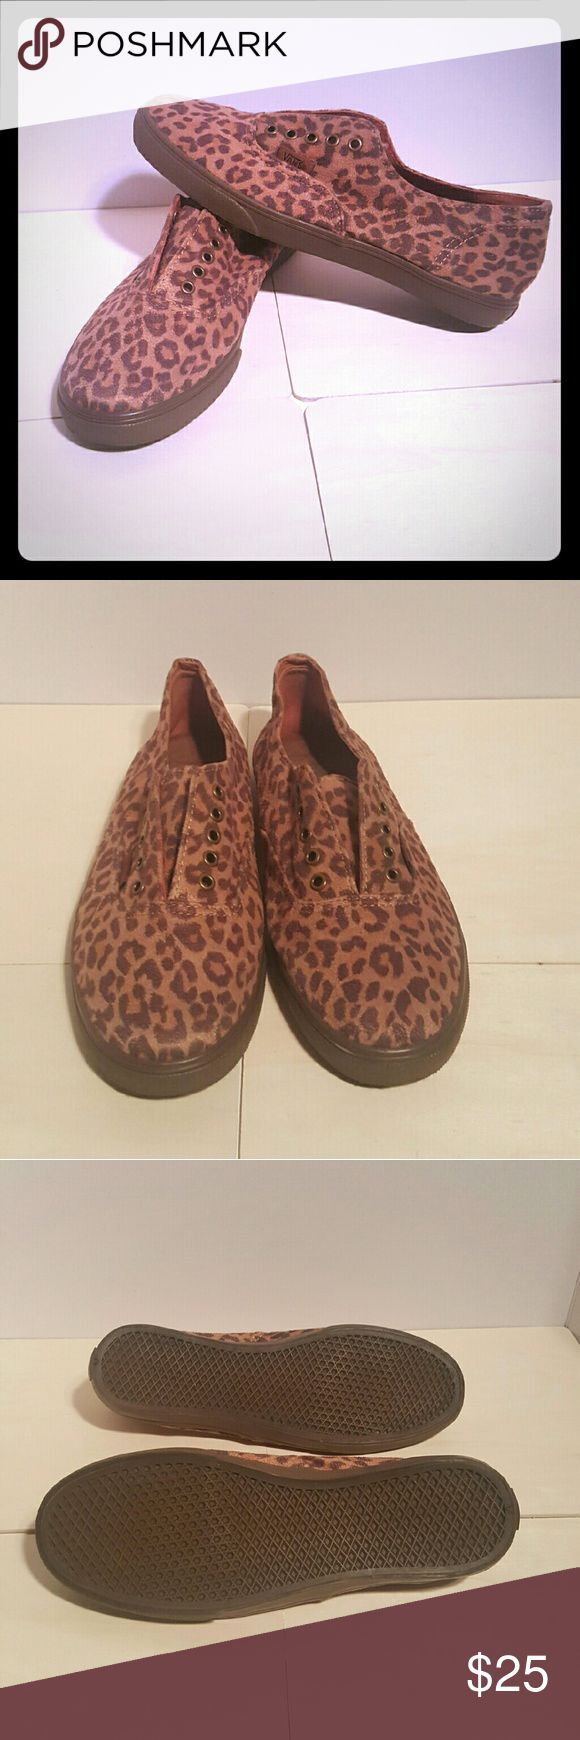 Authentic VANS Leopard Print Sneakers Adorable gently worn VANS.  Leopard Print perfect for any outfit! Vans Shoes Sneakers